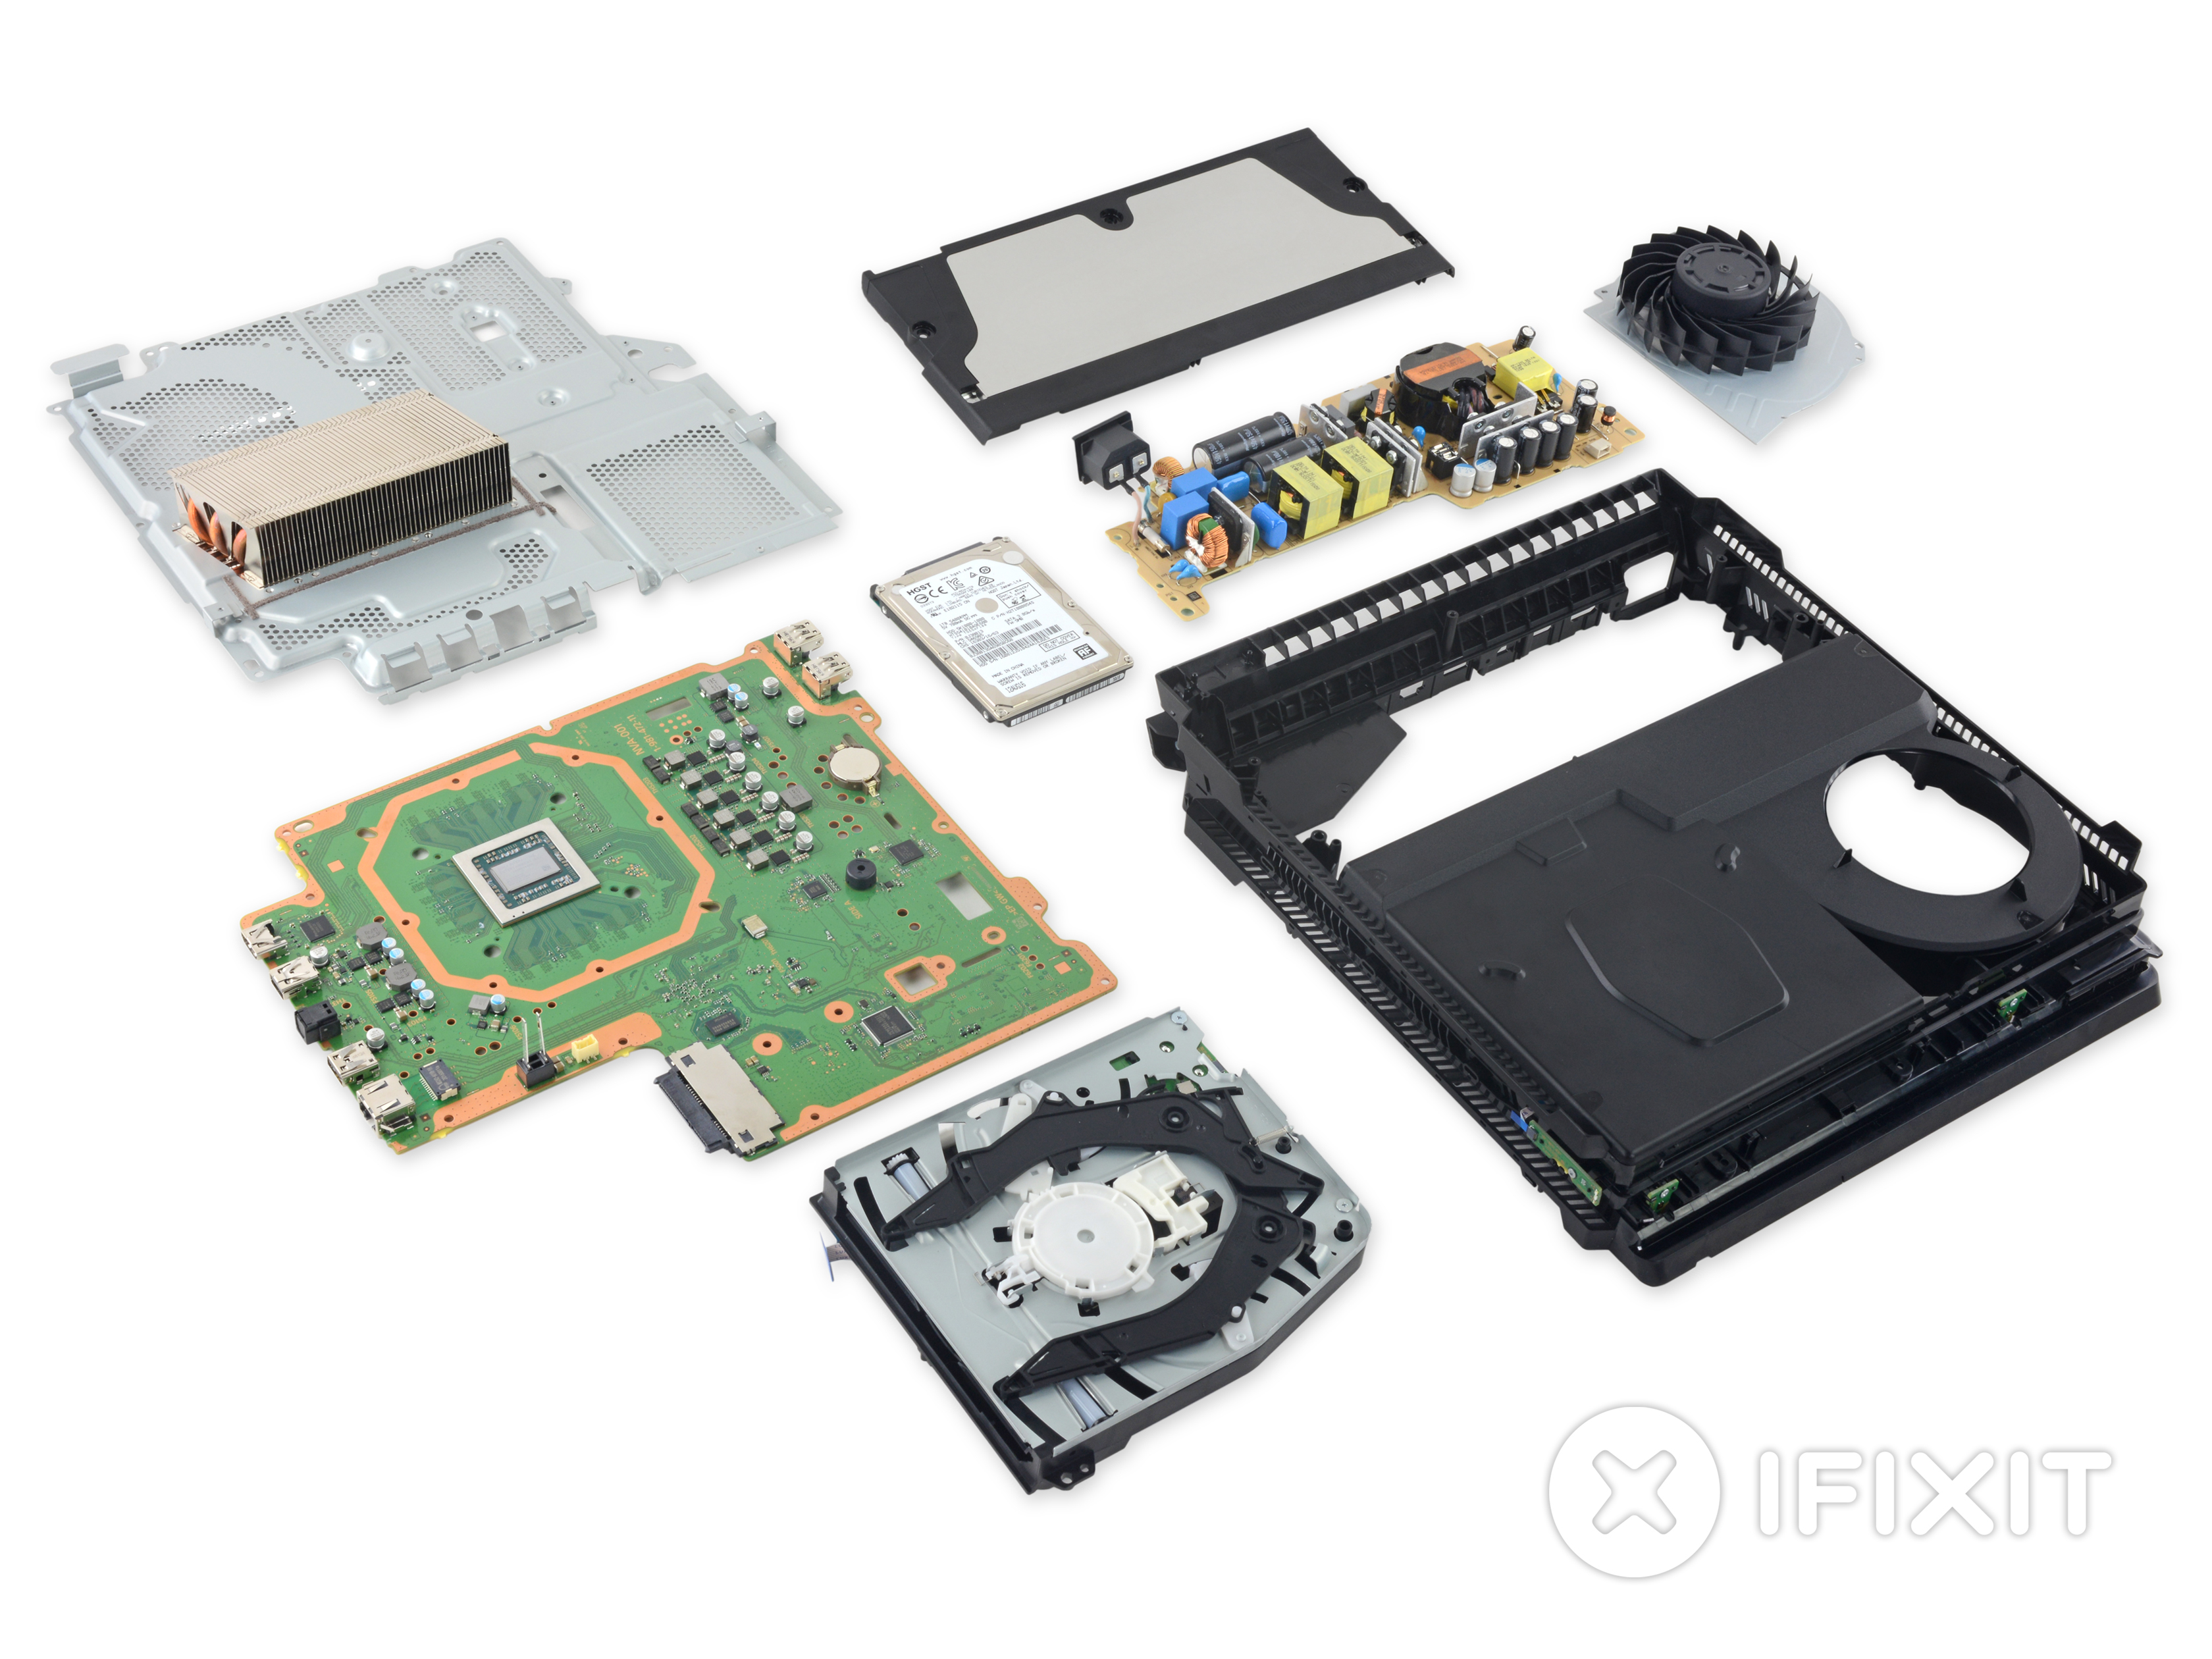 Playstation 4 Pro Teardown Ifixit Seagate Firecuda 25 Inch 2tb Sshd 5 Years Warranty Optimum Hdd For Gaming